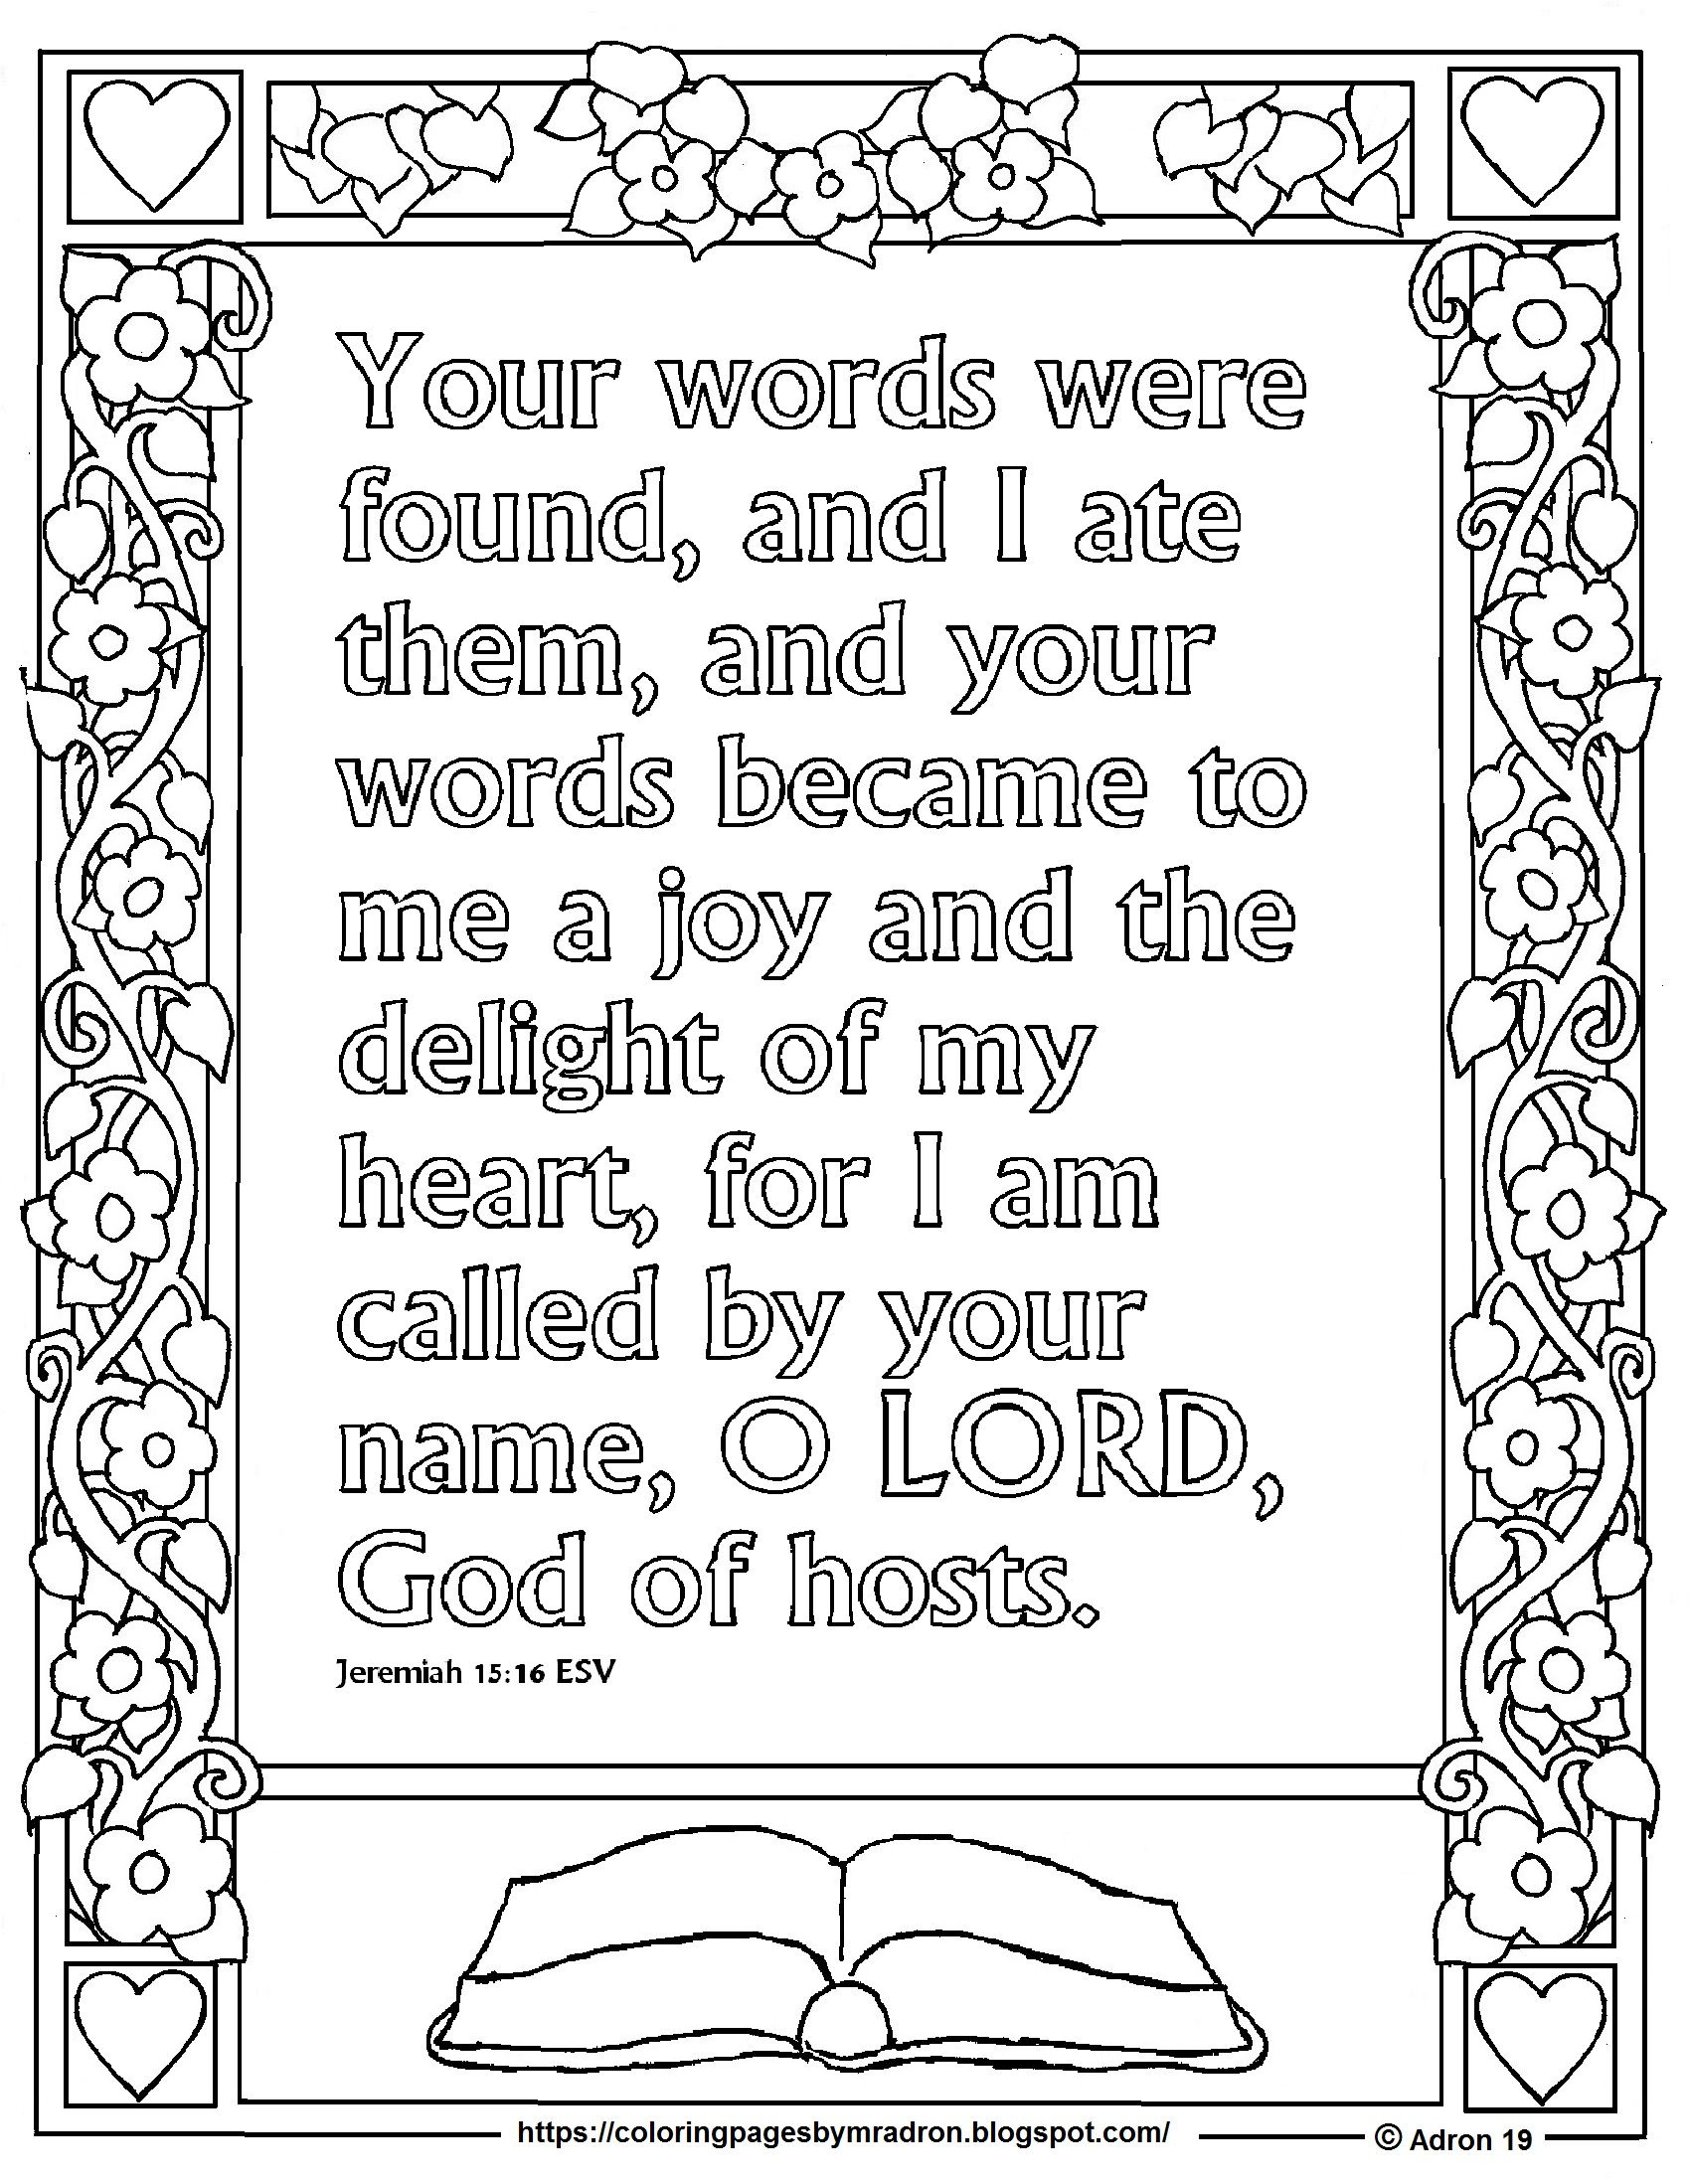 Print And Color Page For Jeremiah 15 16 Your Words Were Found Bible Verse Bible Verse Coloring Page Bible Verse Coloring Bible Coloring Pages